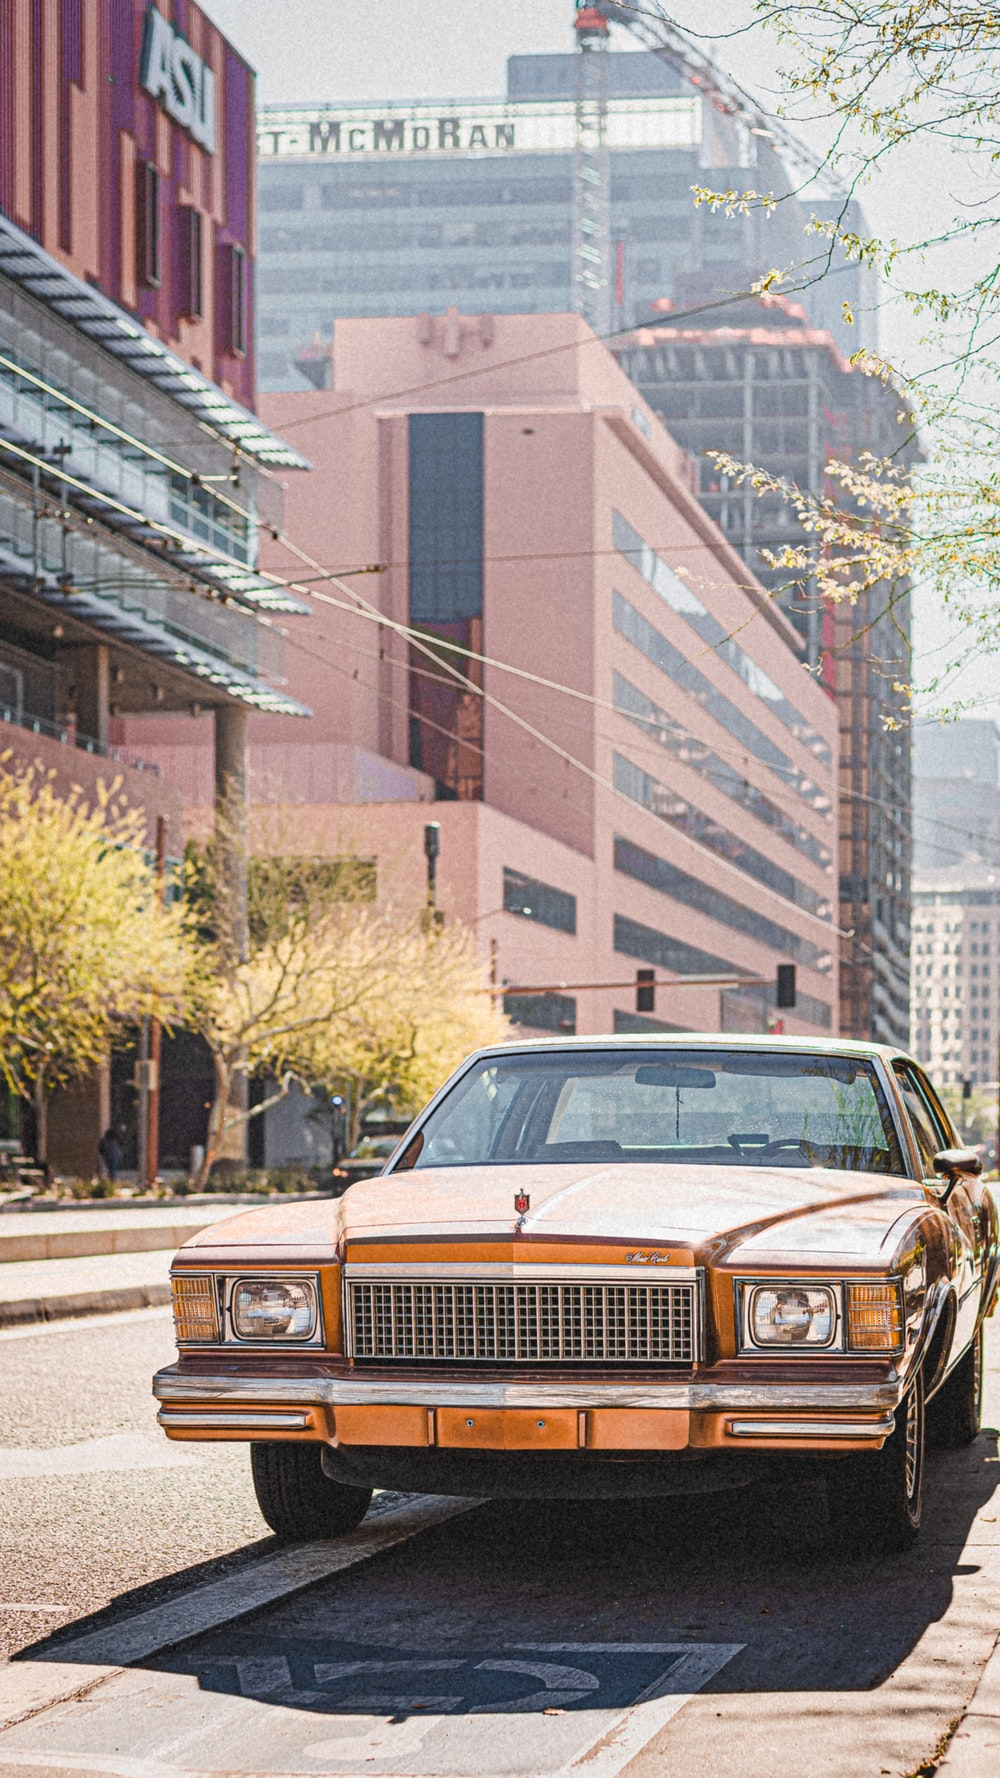 brown and white classic car parked near brown building during daytime